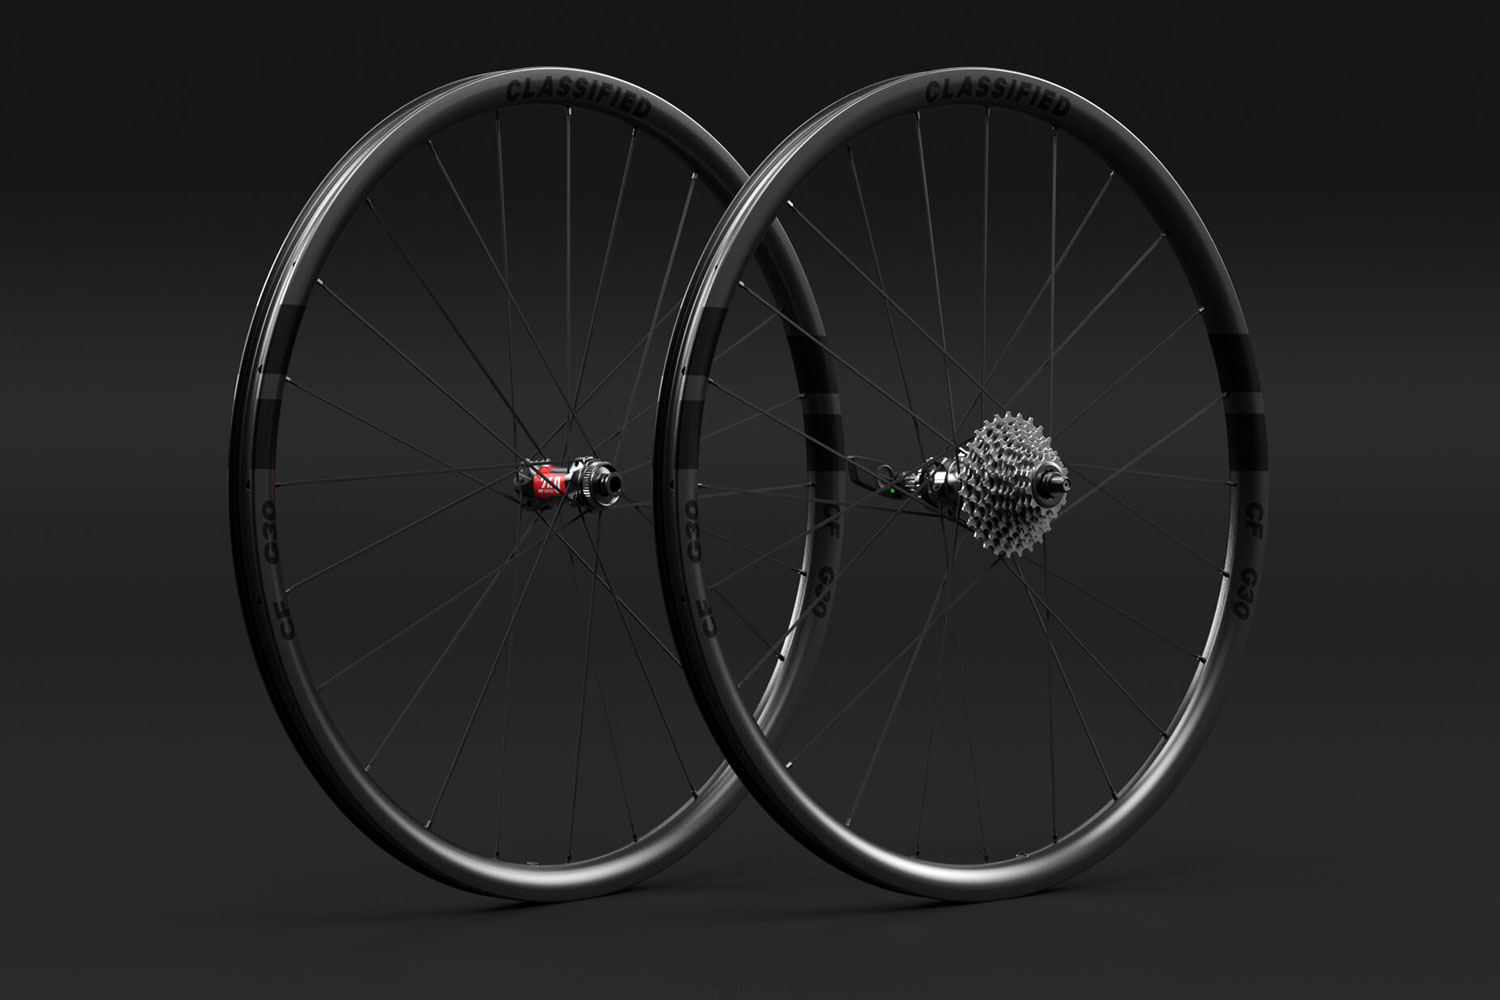 Classified Carbon Wheelsets, gravel & all-road wheels with wireless 2x internal gear hub built-in,30mm gravel